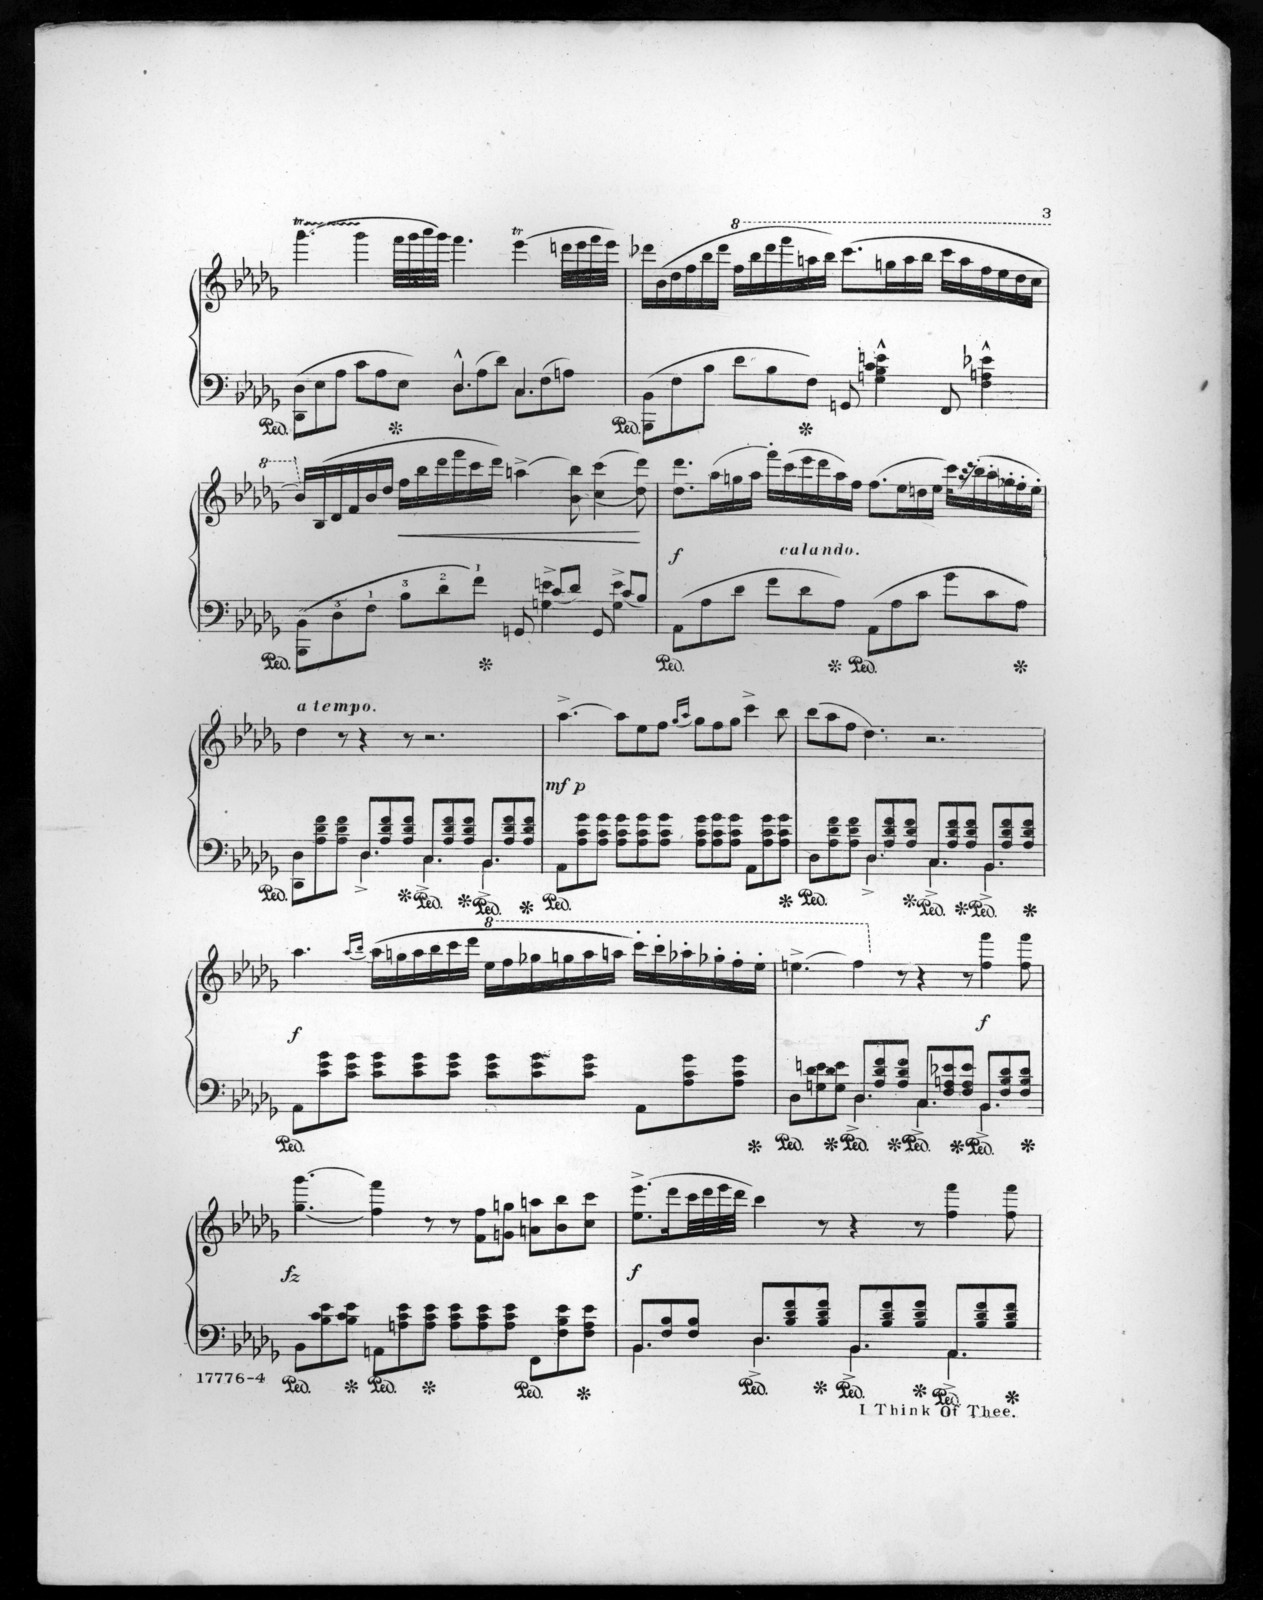 I think of thee, op. 358